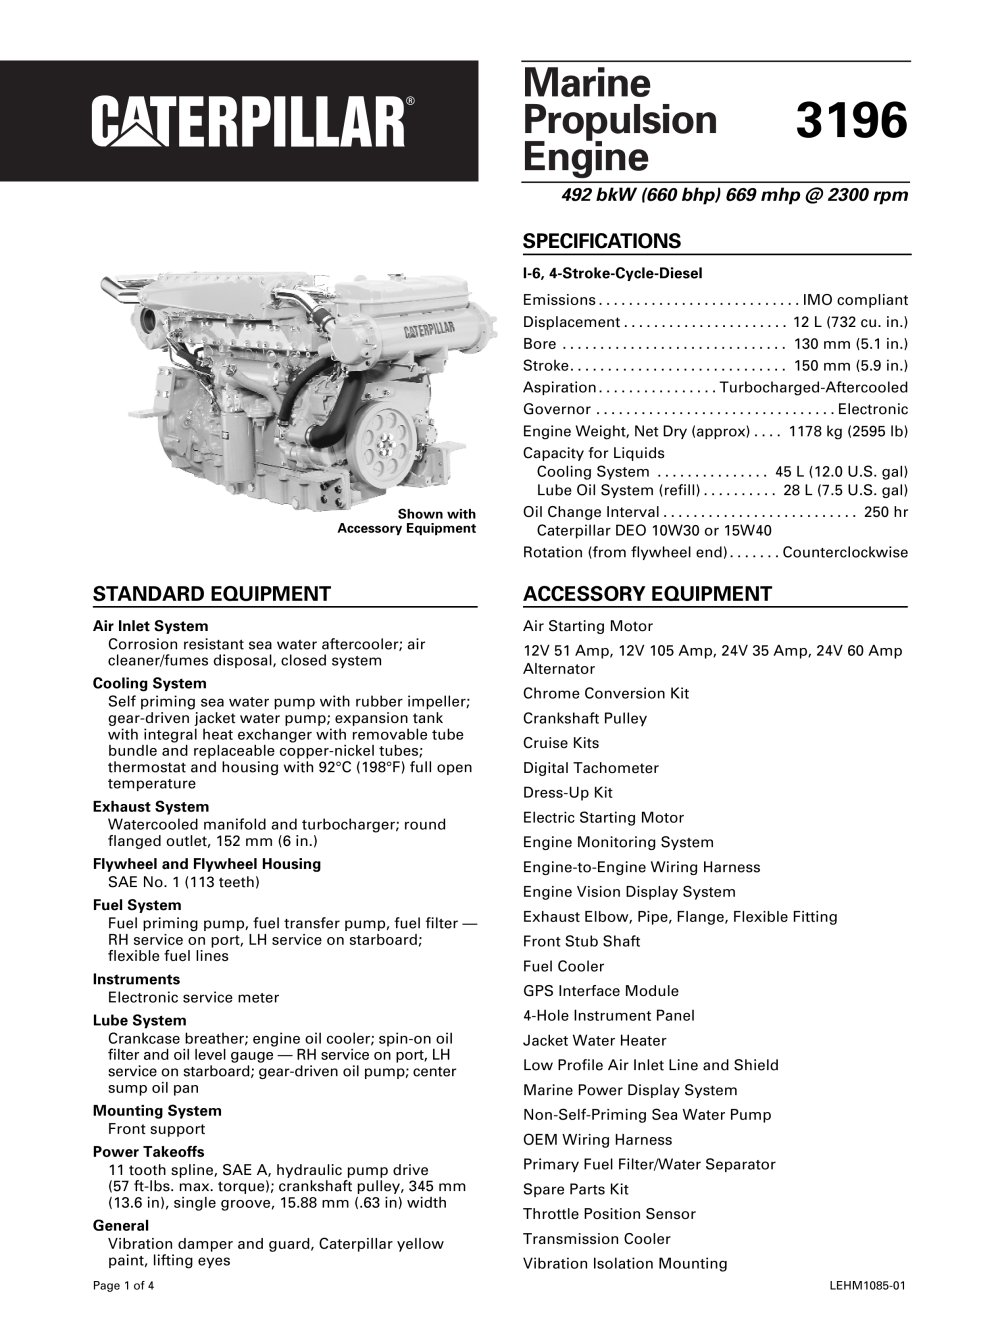 cat propulsion caterpillar marine power systems pdf cat 3196 propulsion 1 24 pages